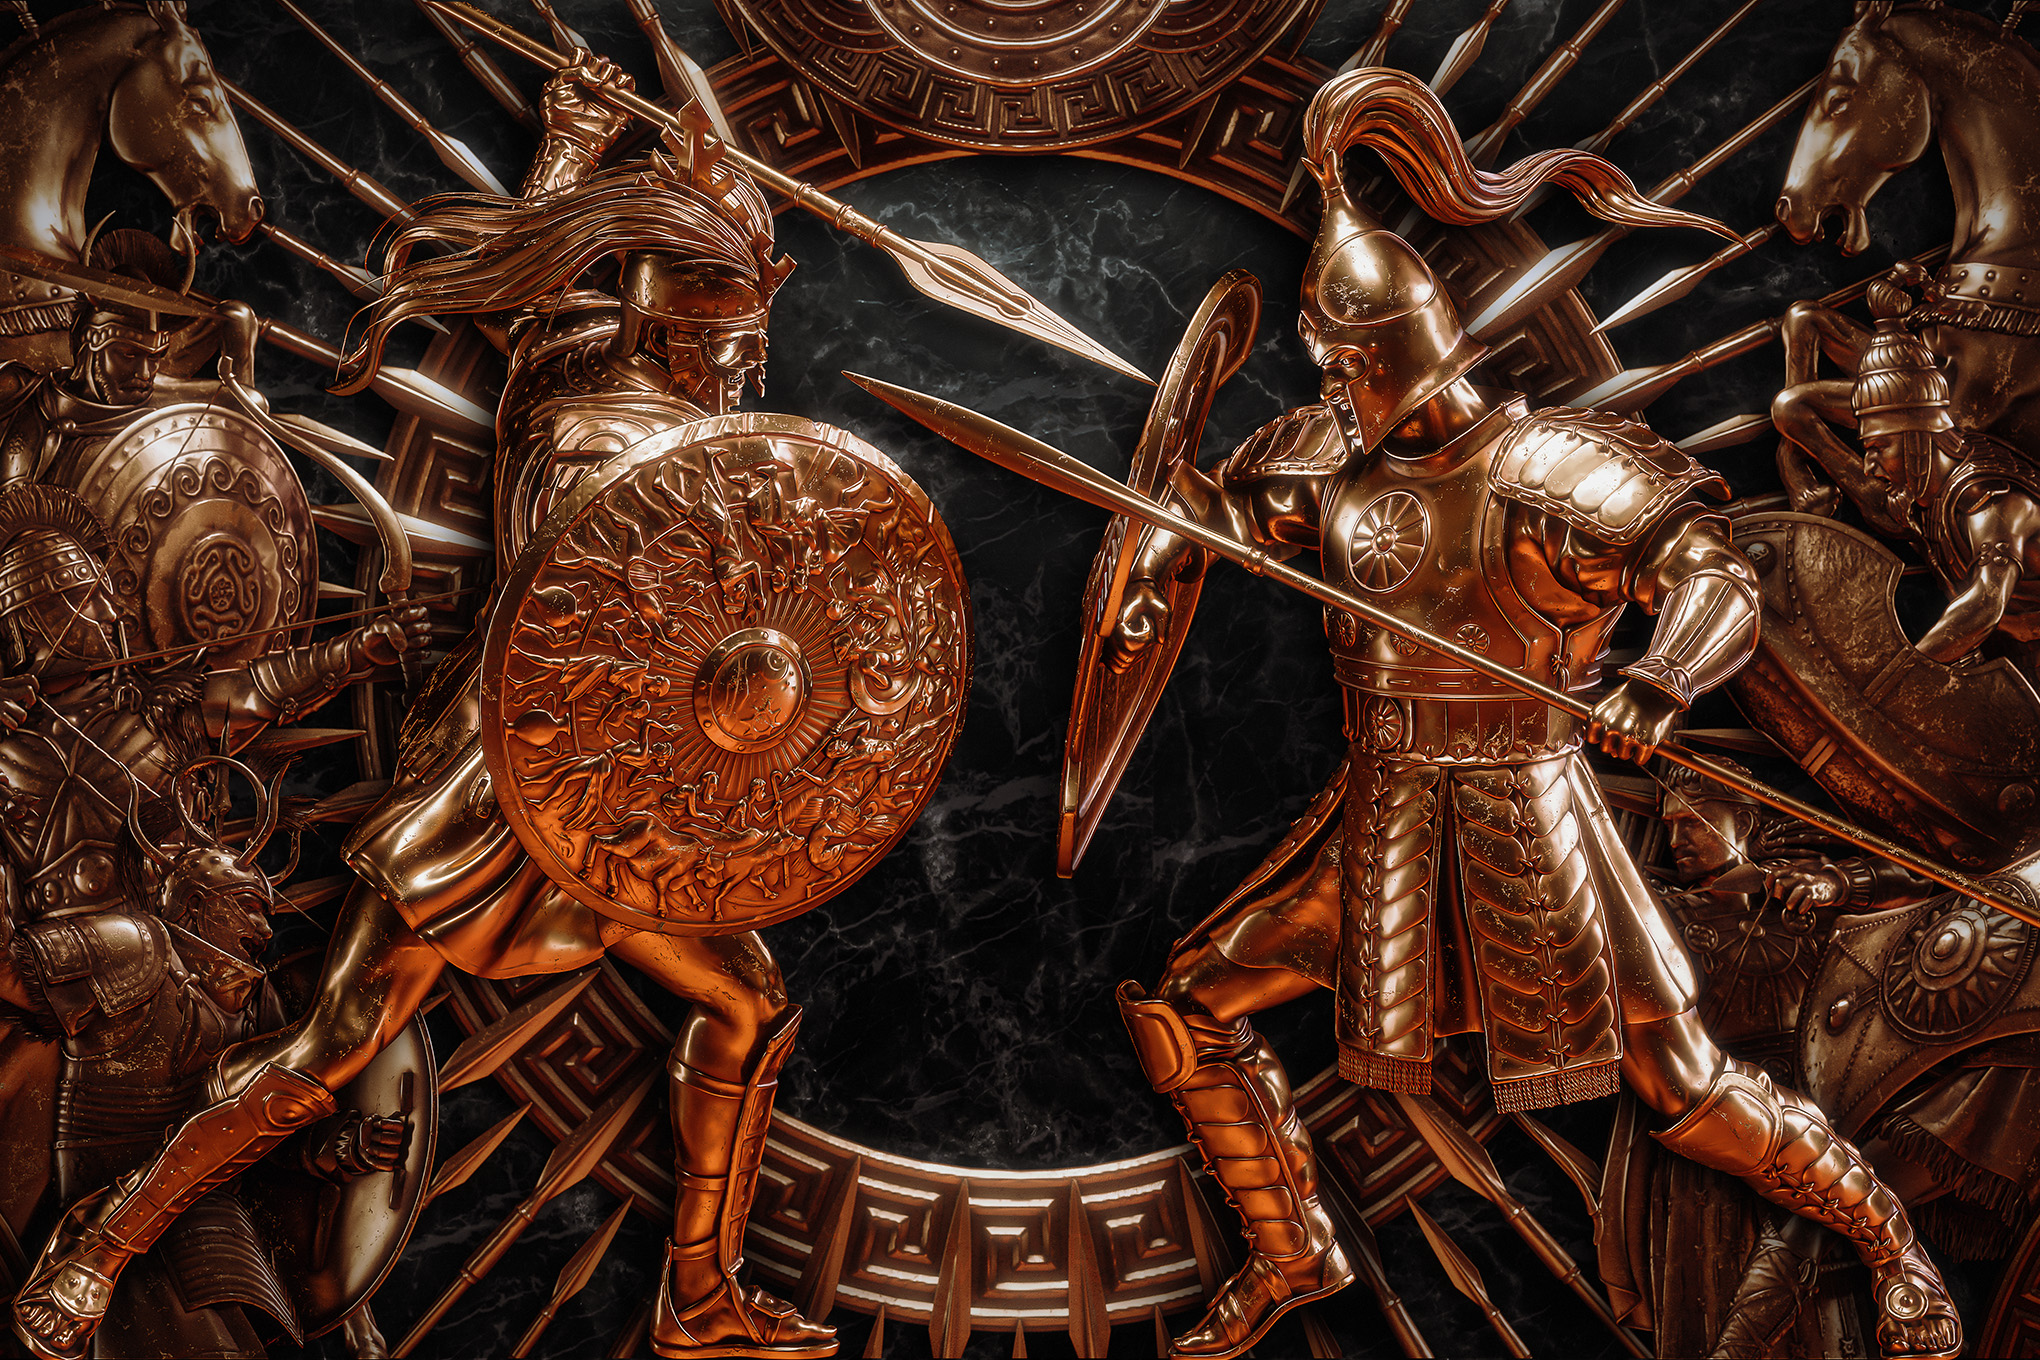 Cast bronze Greek warriors face each other down on an ornate black background in key art for A Total War Saga: Troy.